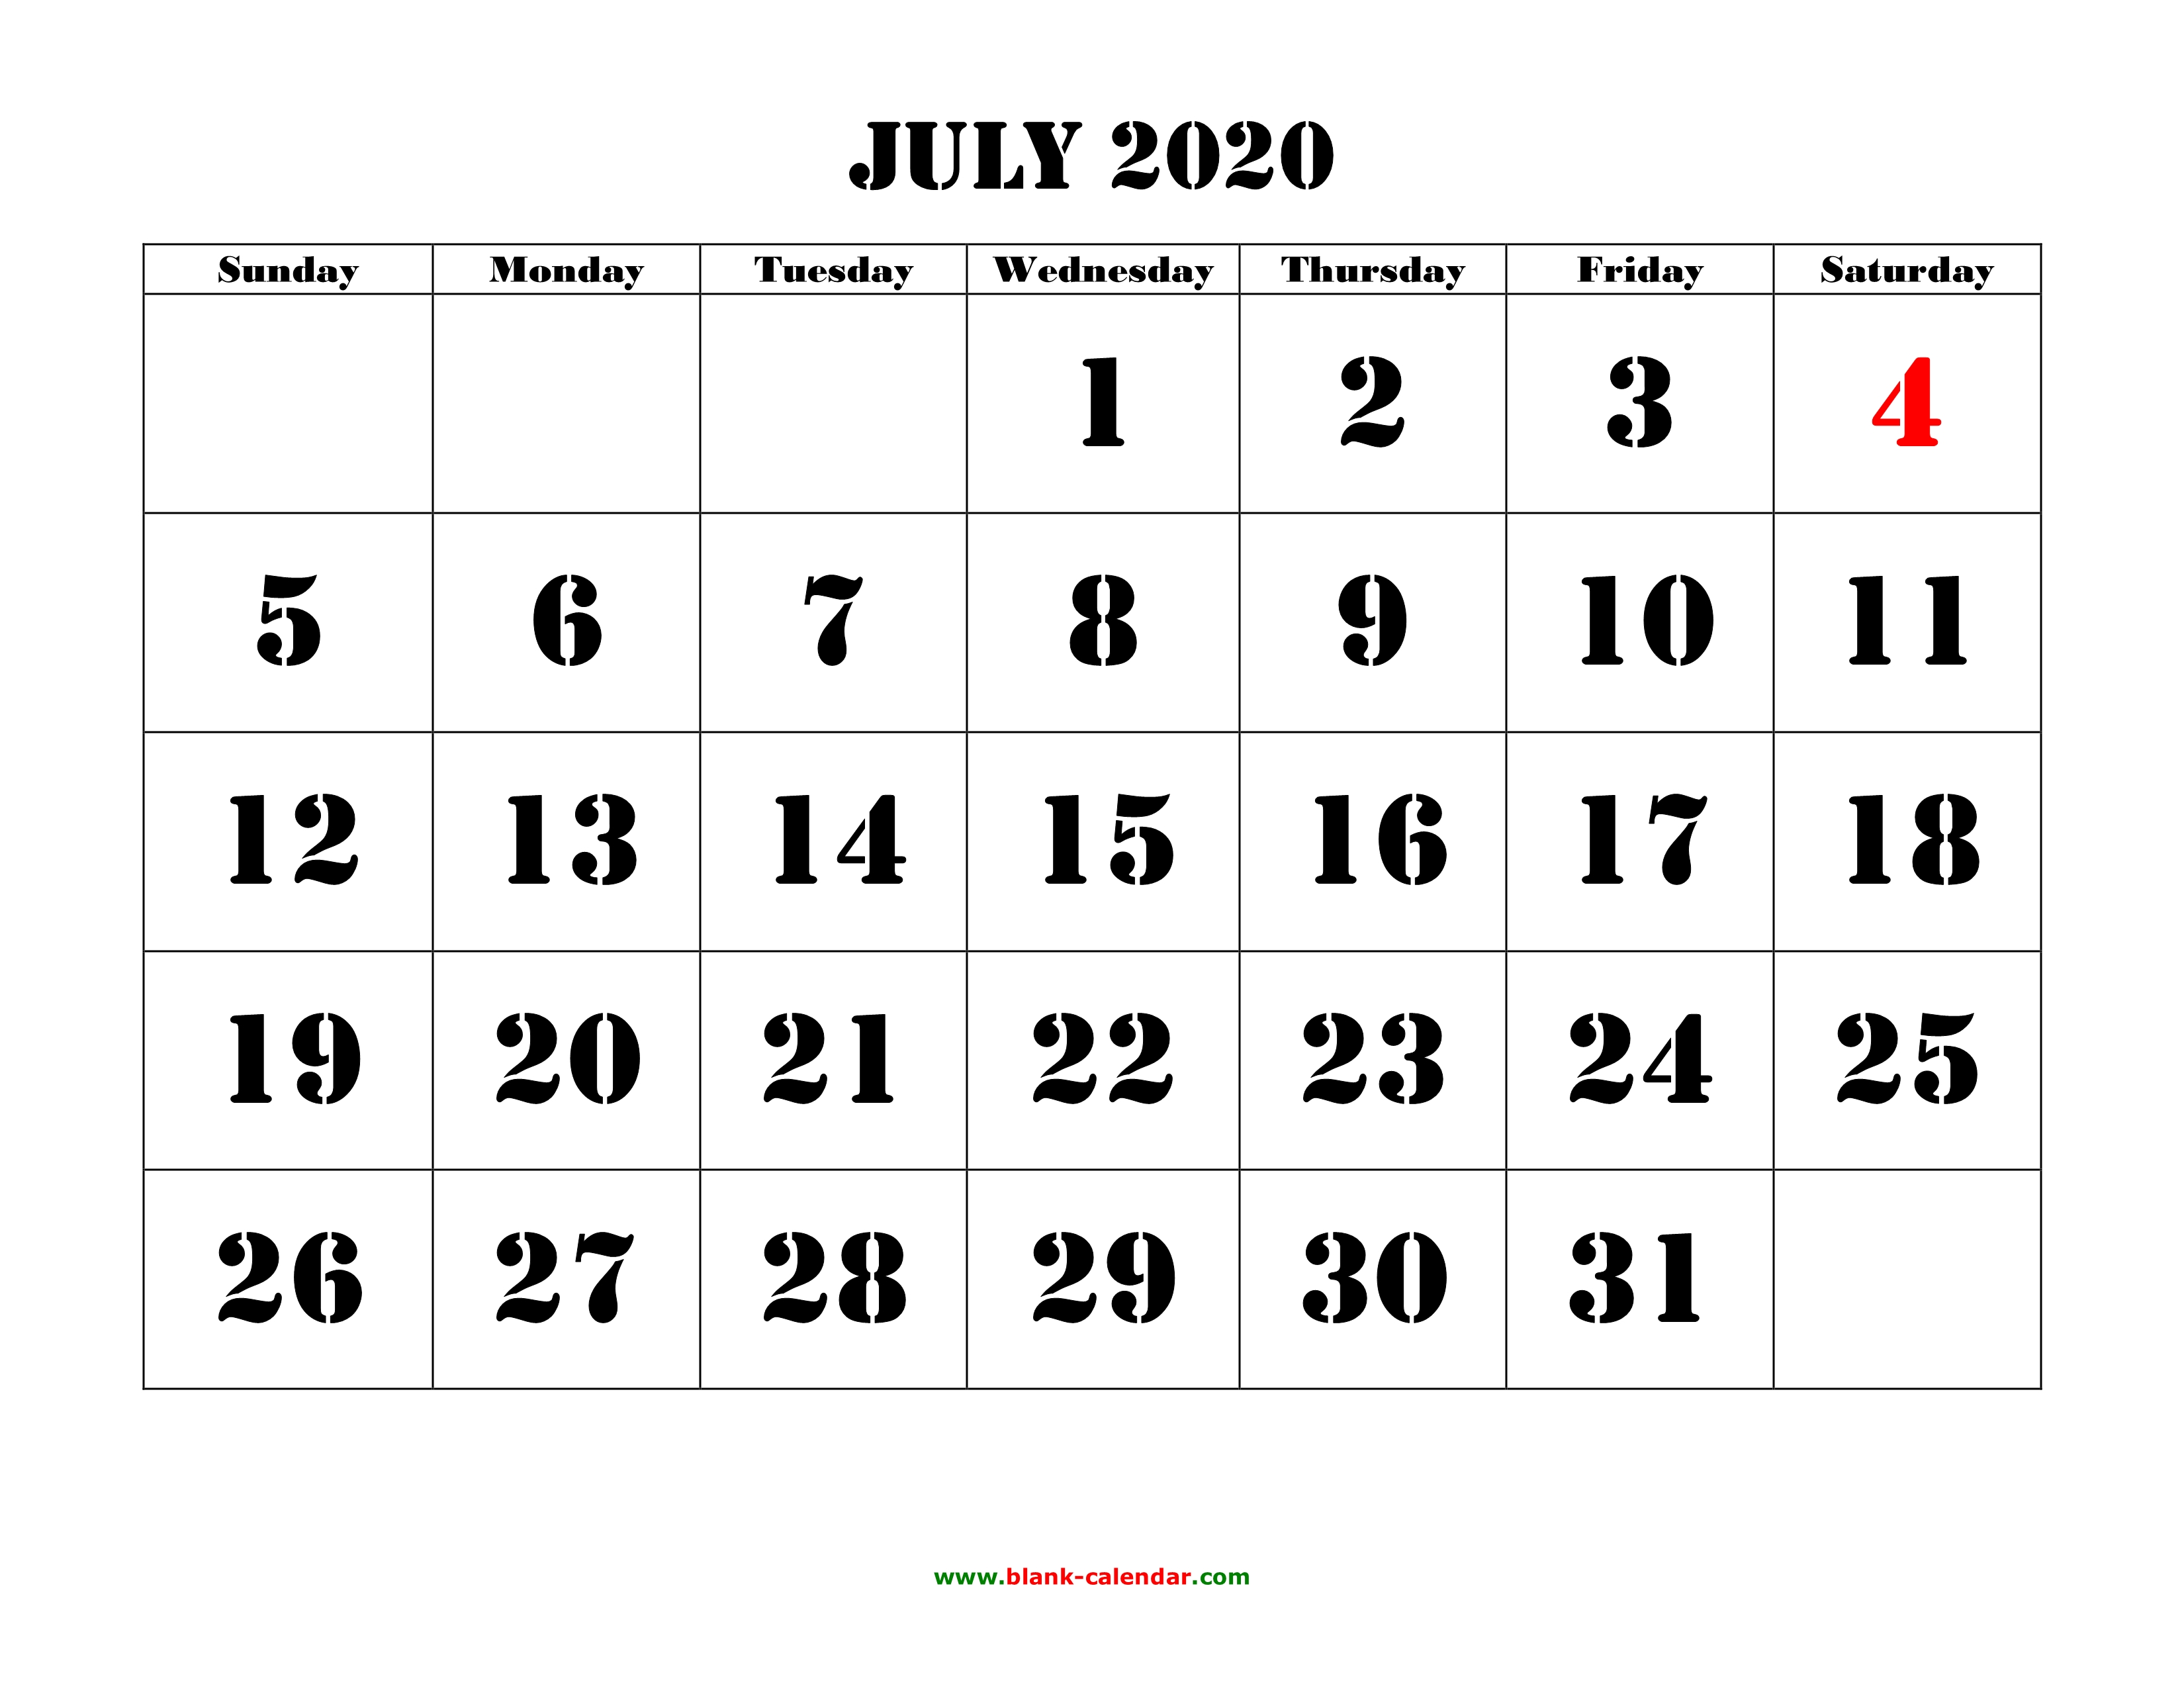 July 4 2020 Calendar Free Download Printable July 2020 Calendar, large font design